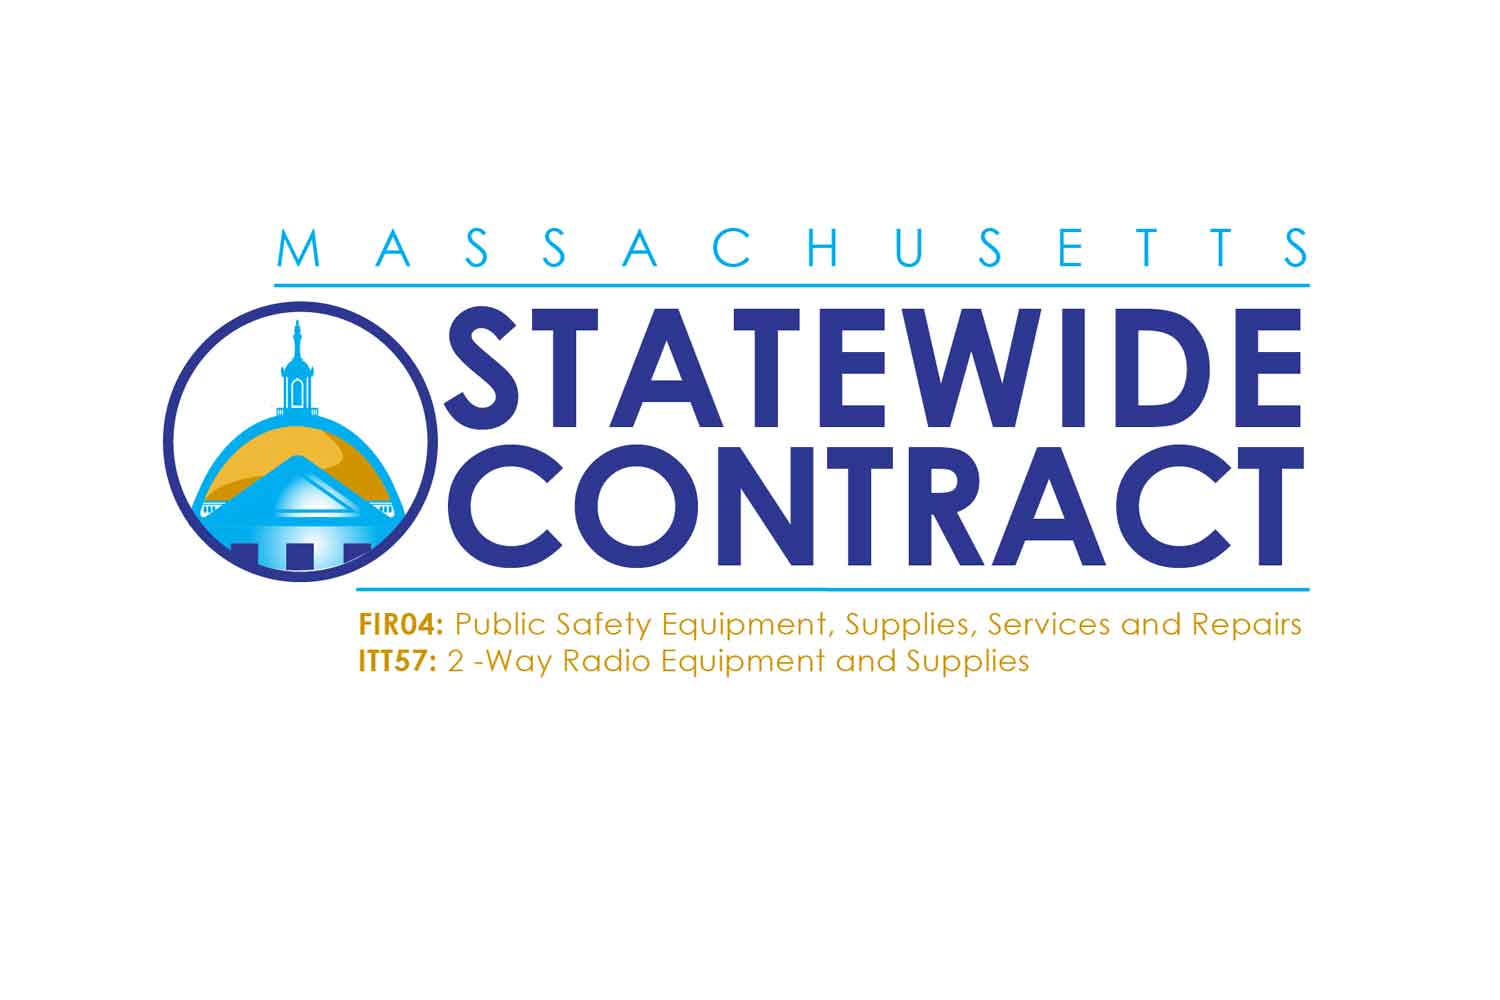 massachusetts_statewide_contract.jpg